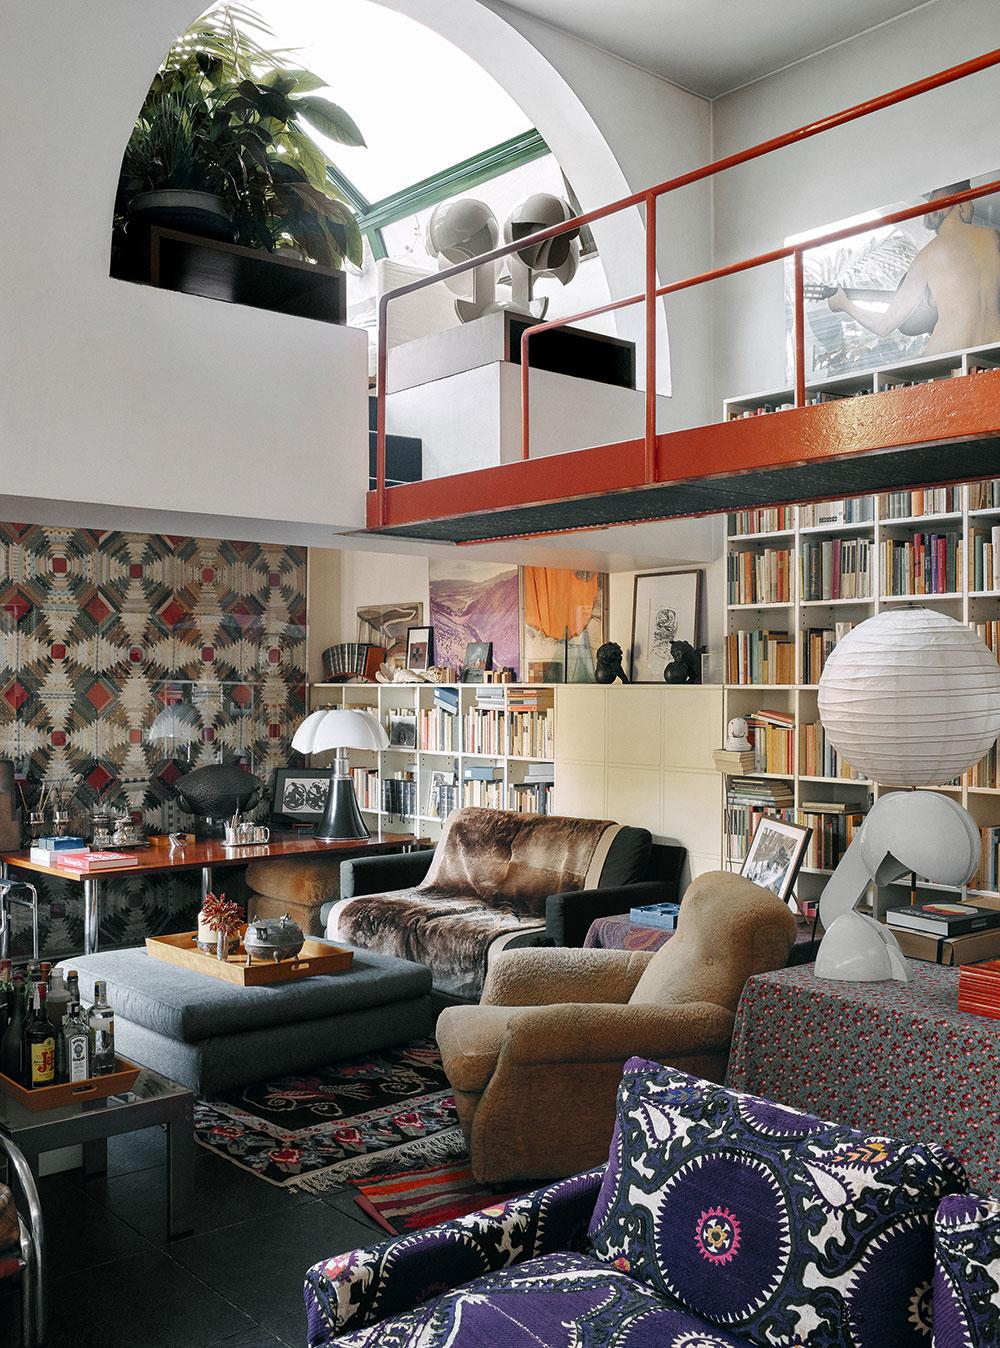 Gae Aulenti's Milan apartment living room